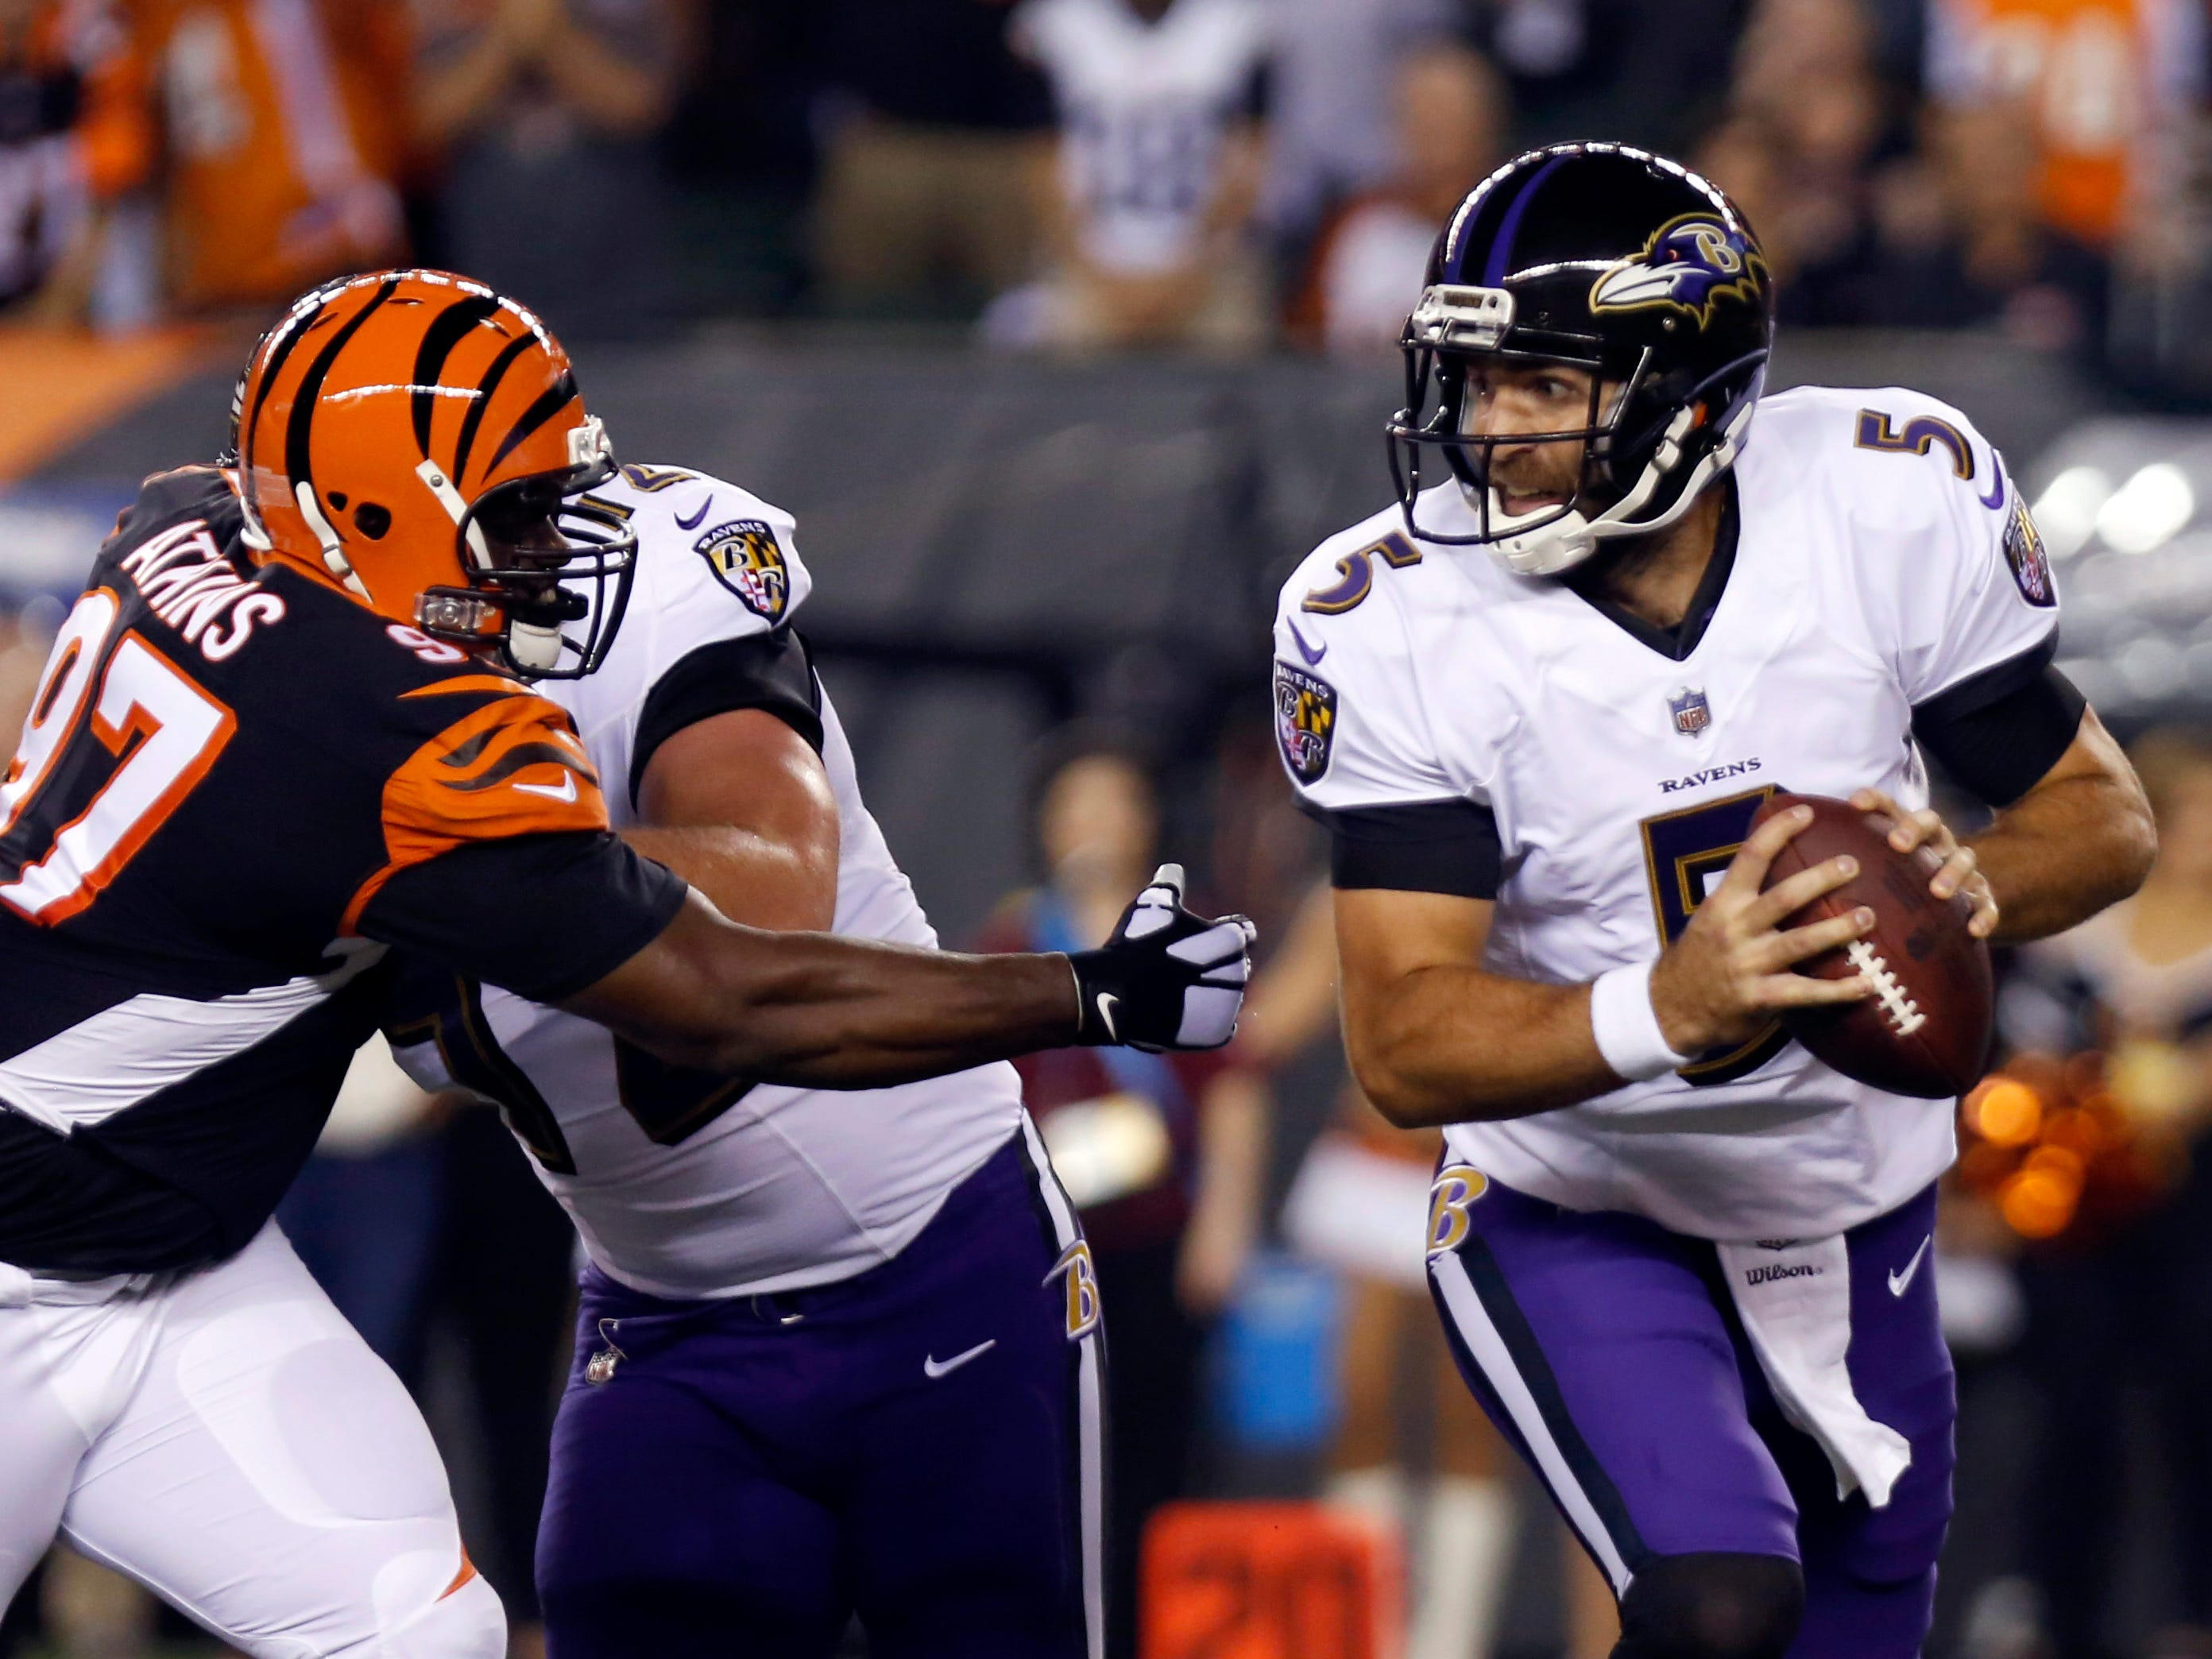 Baltimore Ravens quarterback Joe Flacco runs against Cincinnati Bengals defensive tackle Geno Atkins during the first half at Paul Brown Stadium.